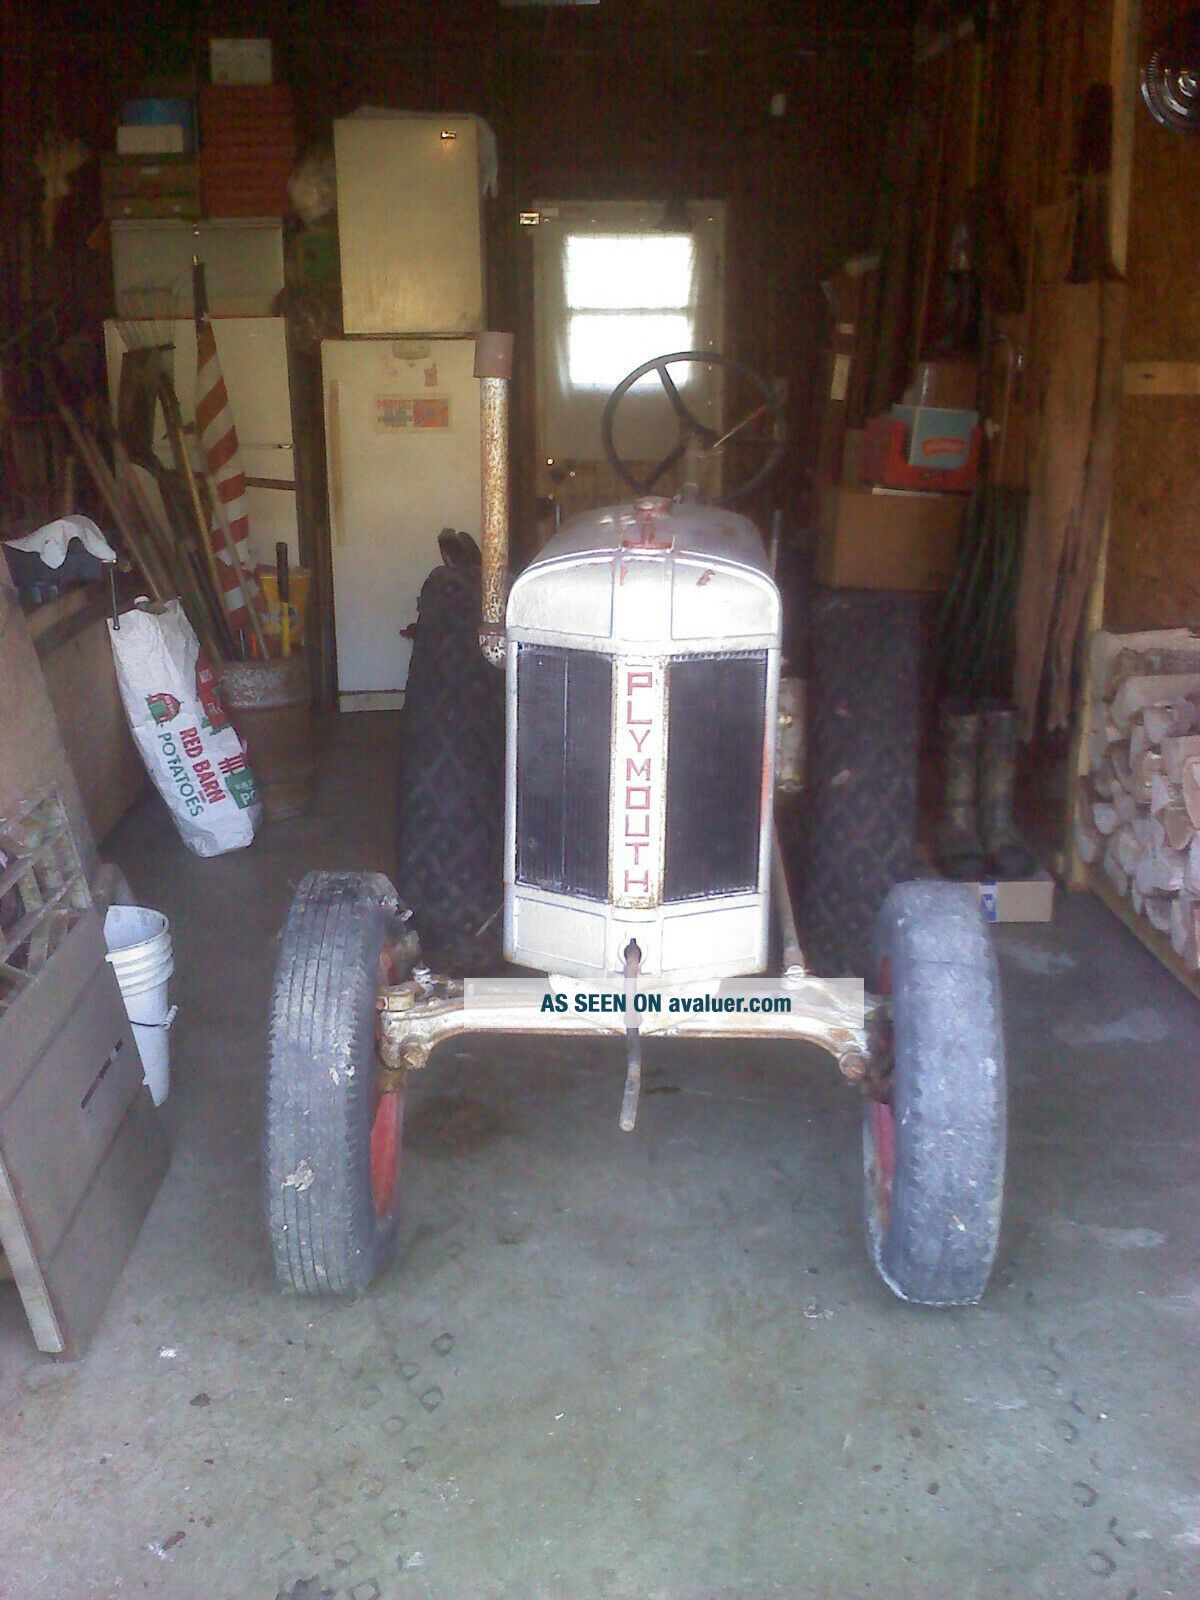 1934 PLYMOUTH Tractor Silver King,  Fate - Root - Heath Plymouth,  Ohio - RARE